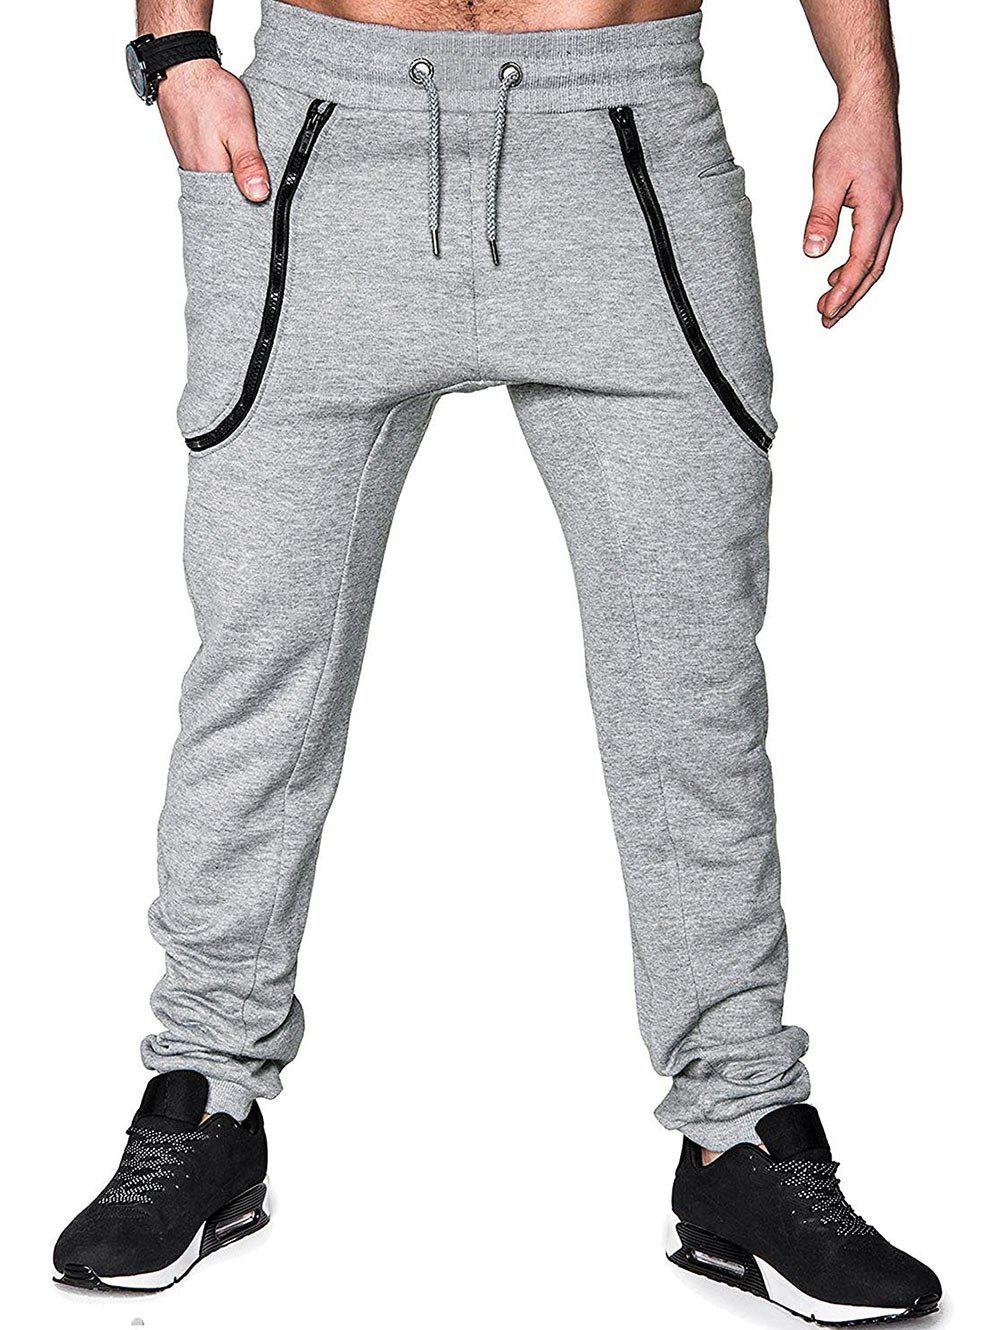 Buy Zippers Solid Color Casual Jogger Pants